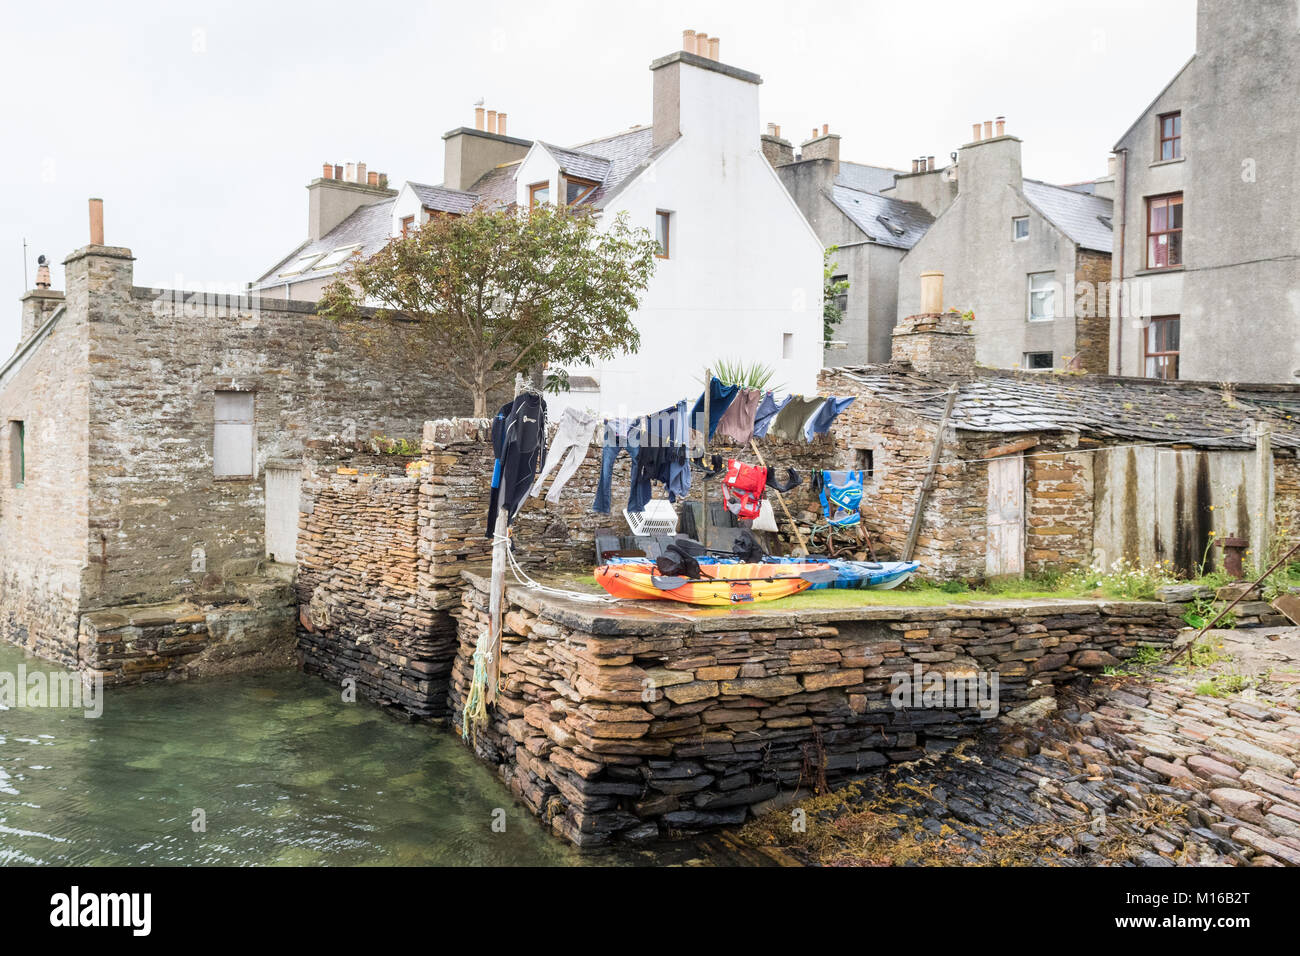 sea kayaks and wetsuits drying on washing line in seafront garden in Stromness, Orkney, Scotland, UK - Stock Image